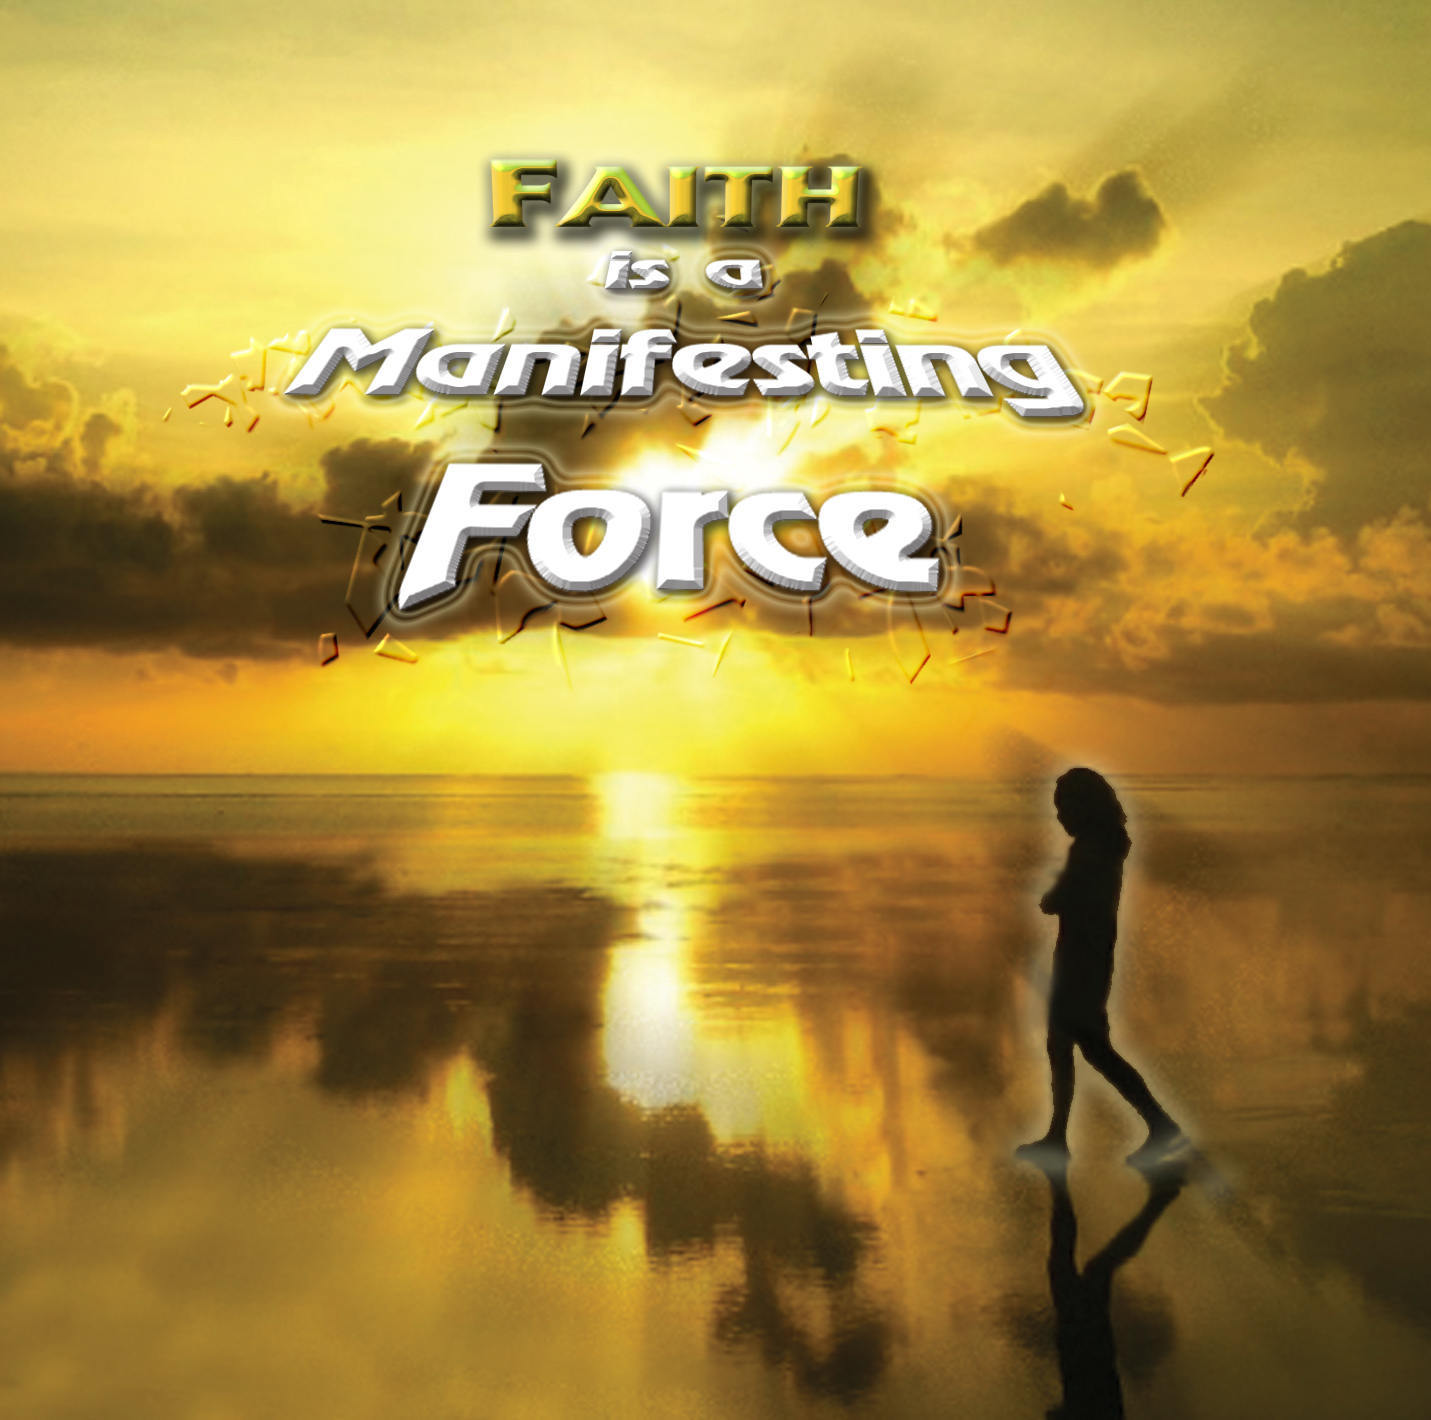 Faith- A Manifesting Force